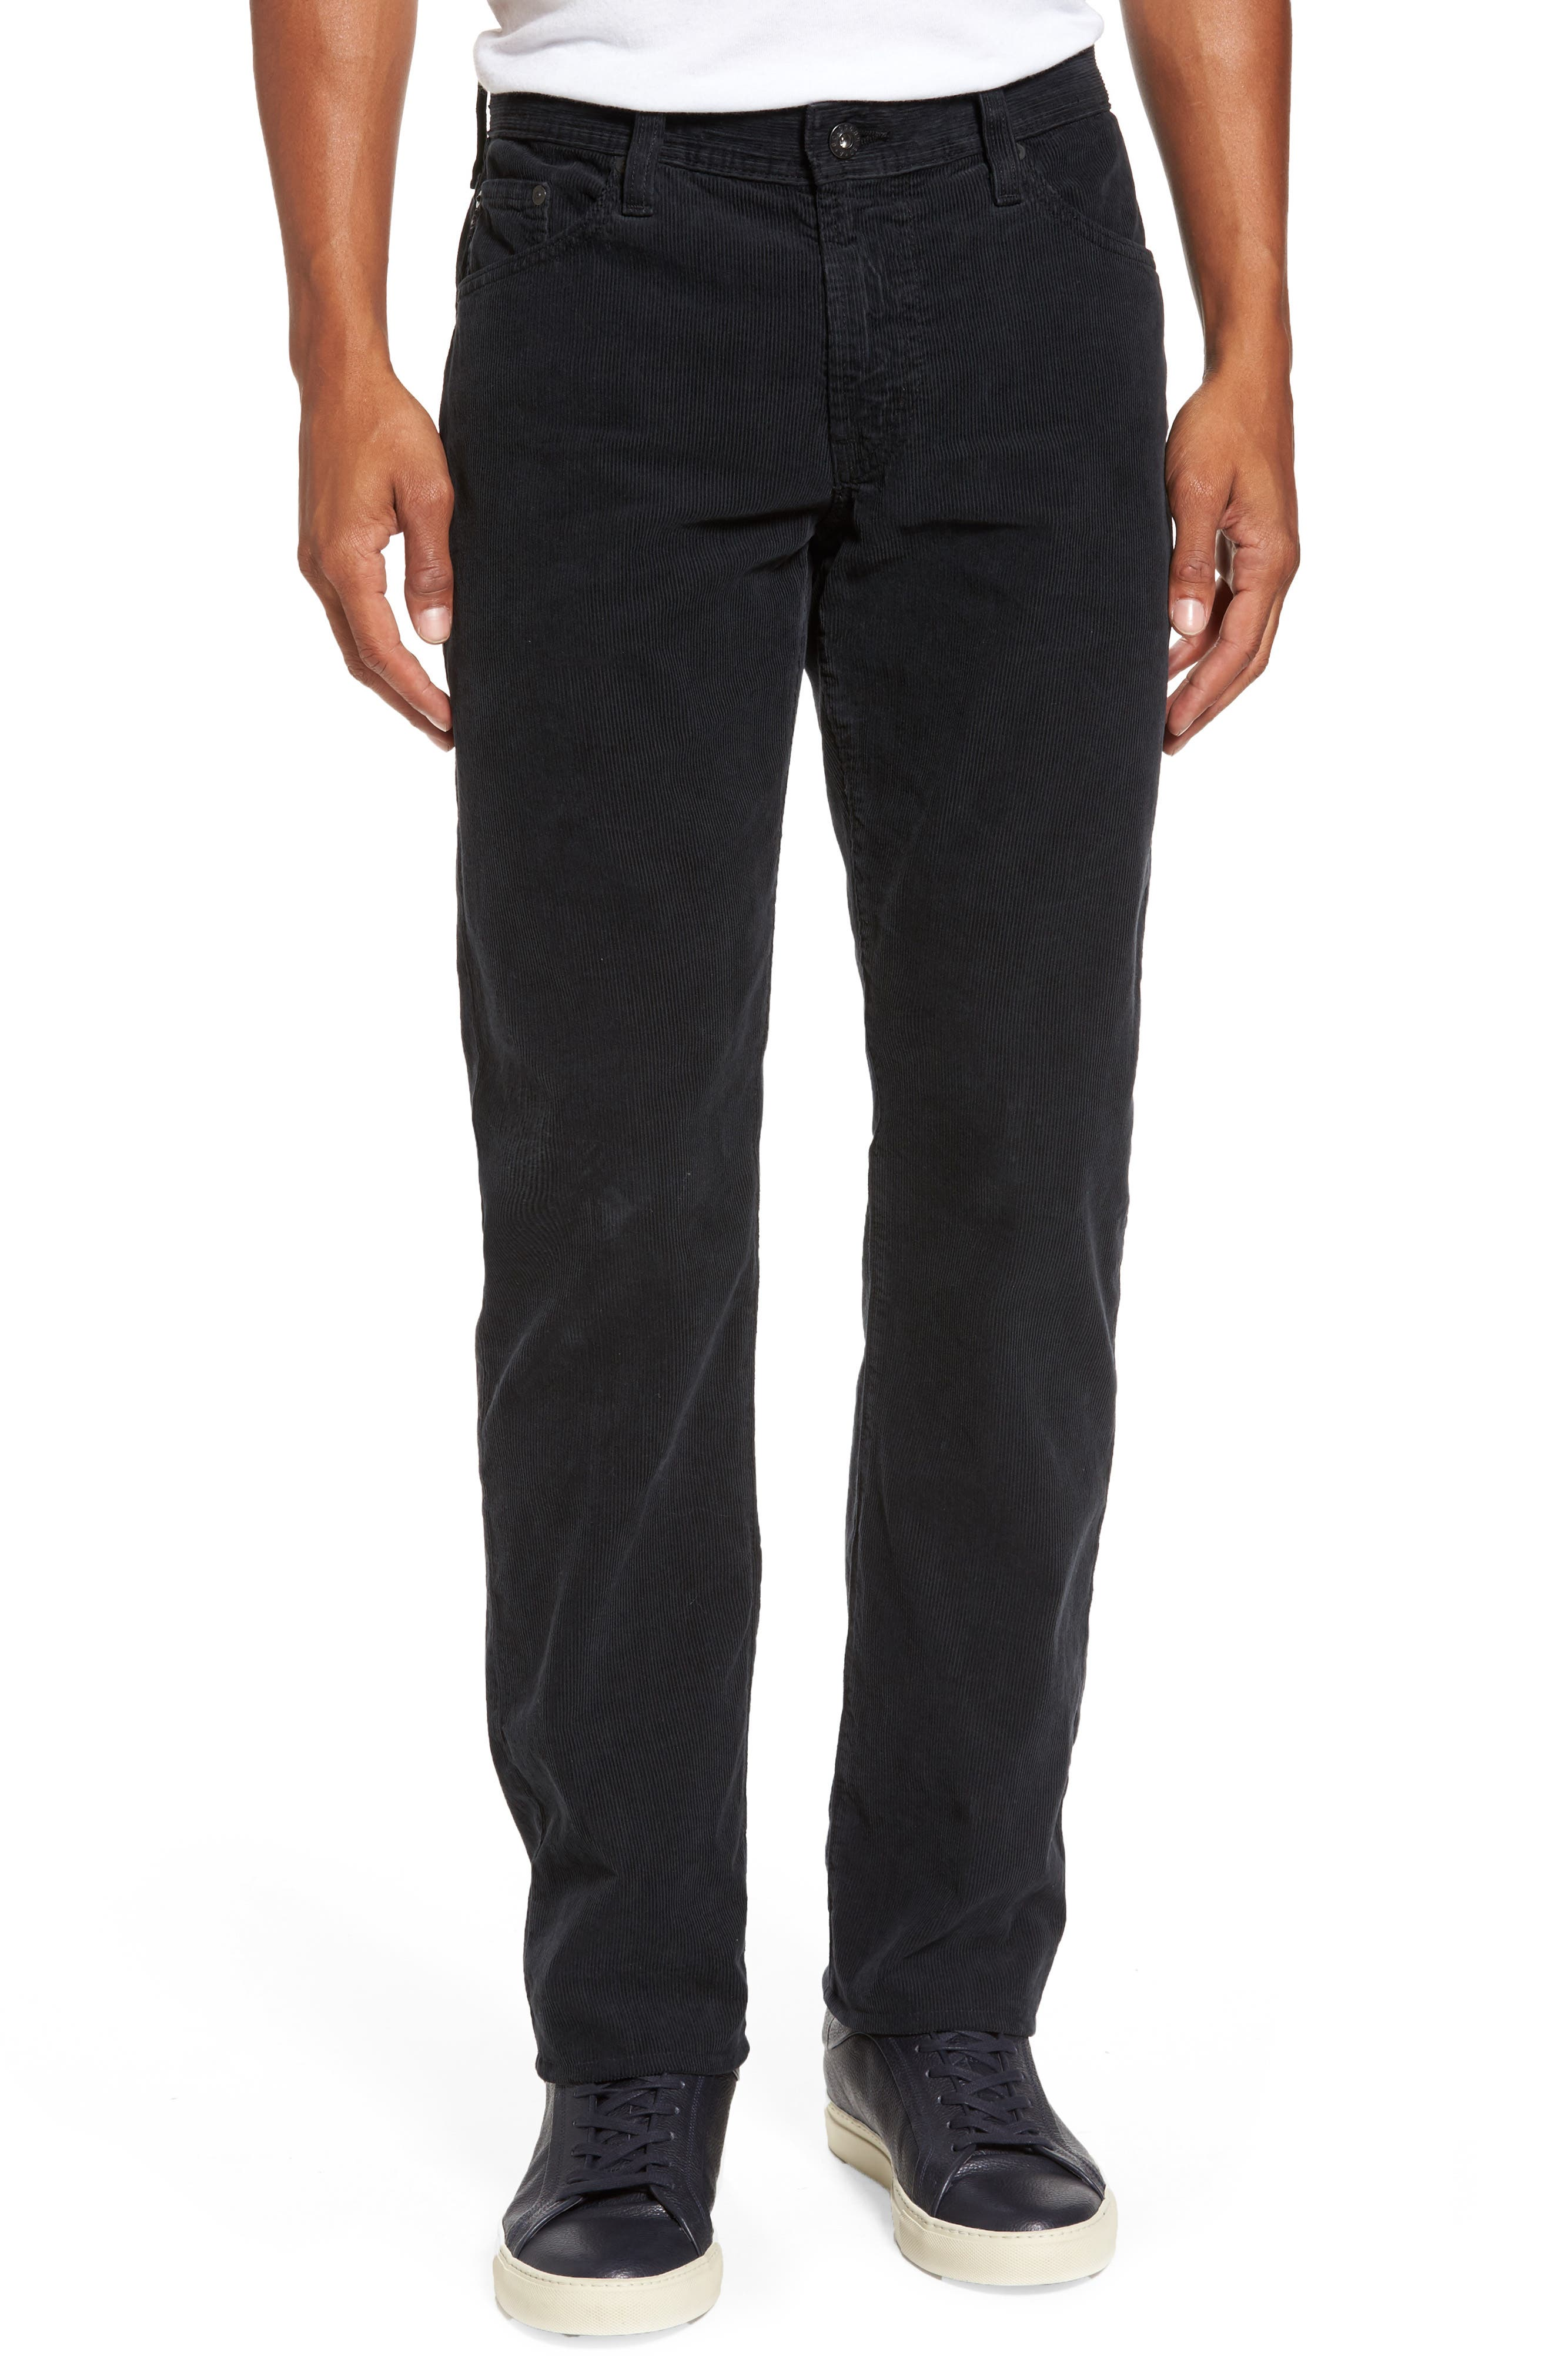 'Graduate' Tailored Straight Leg Corduroy Pants,                             Main thumbnail 1, color,                             017